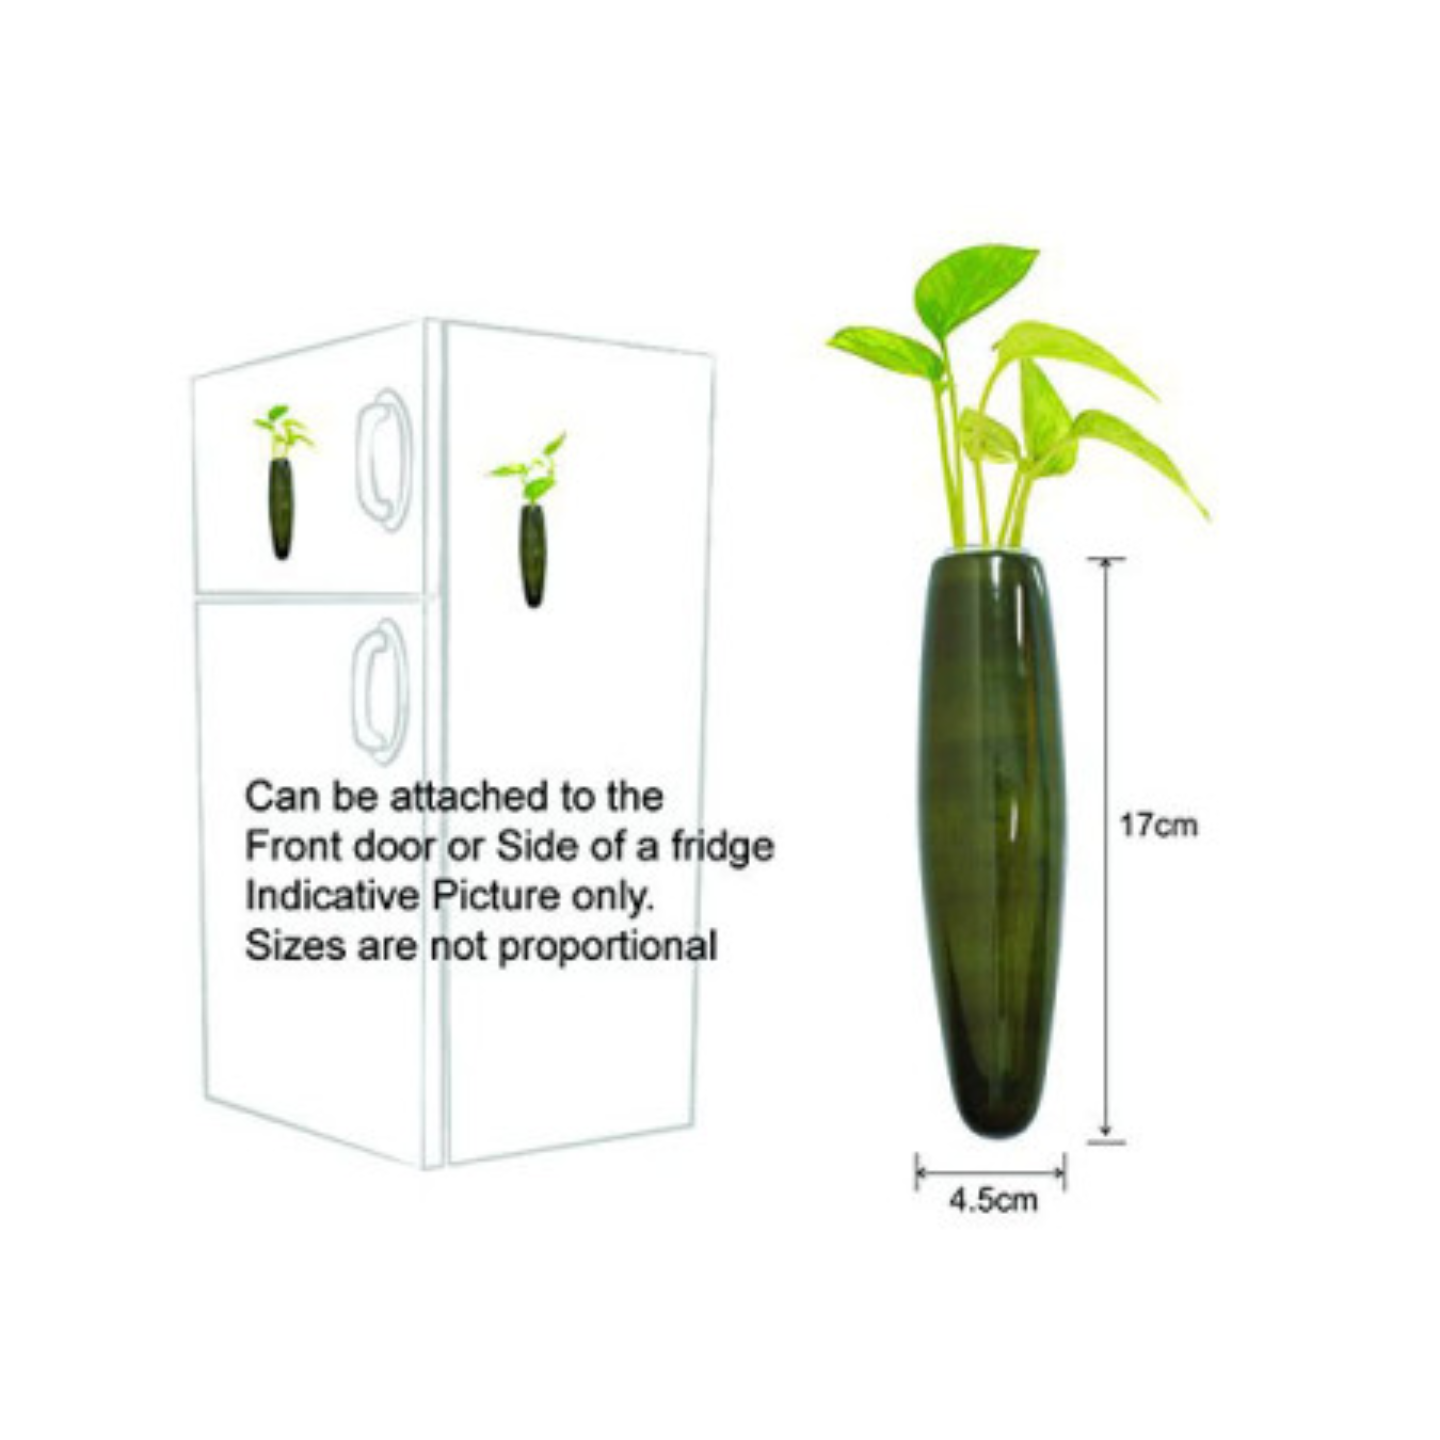 Yellow Fridge Plant Holder